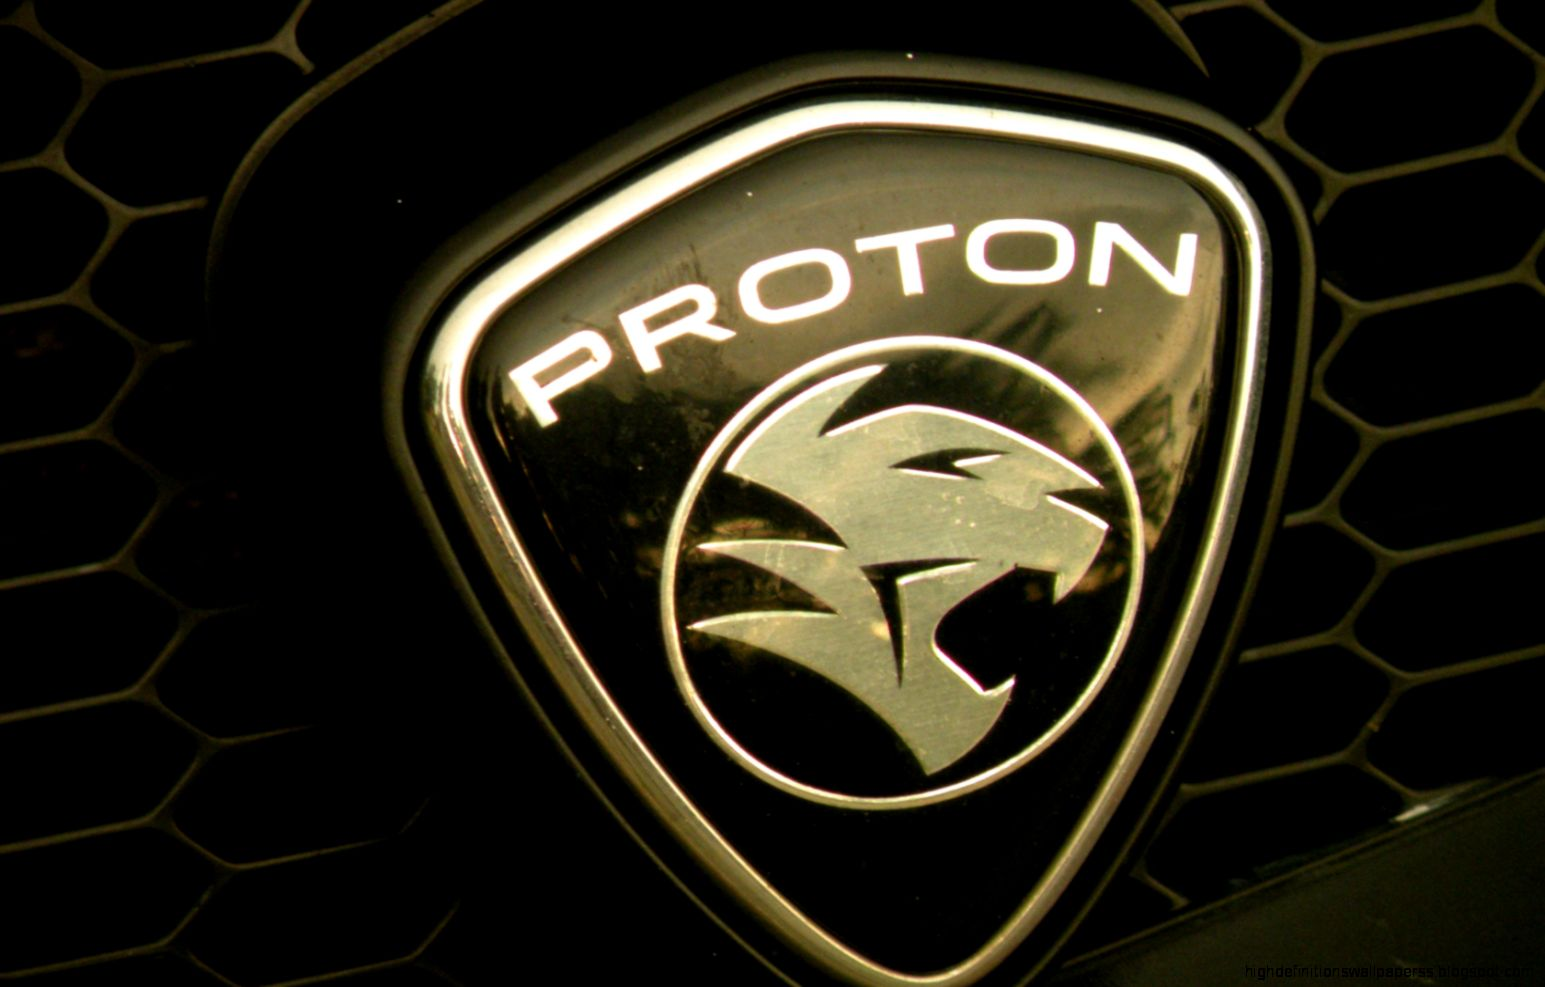 1545x987 - Proton Wallpapers 7